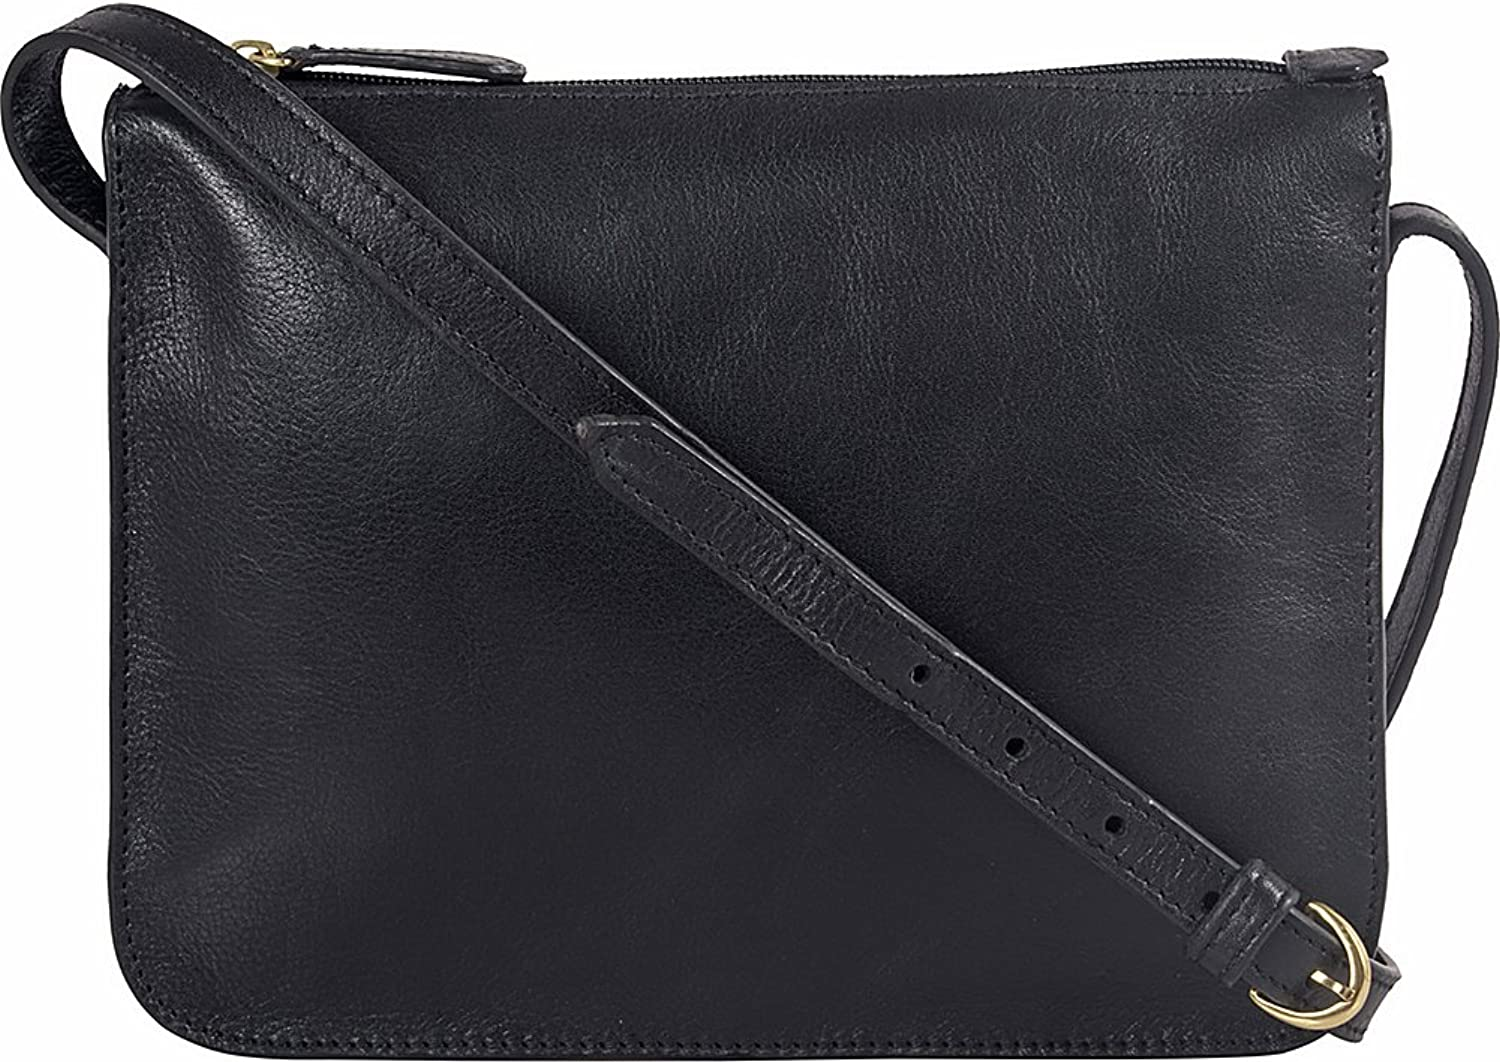 Hidesign Carmel Medium Sling Bag